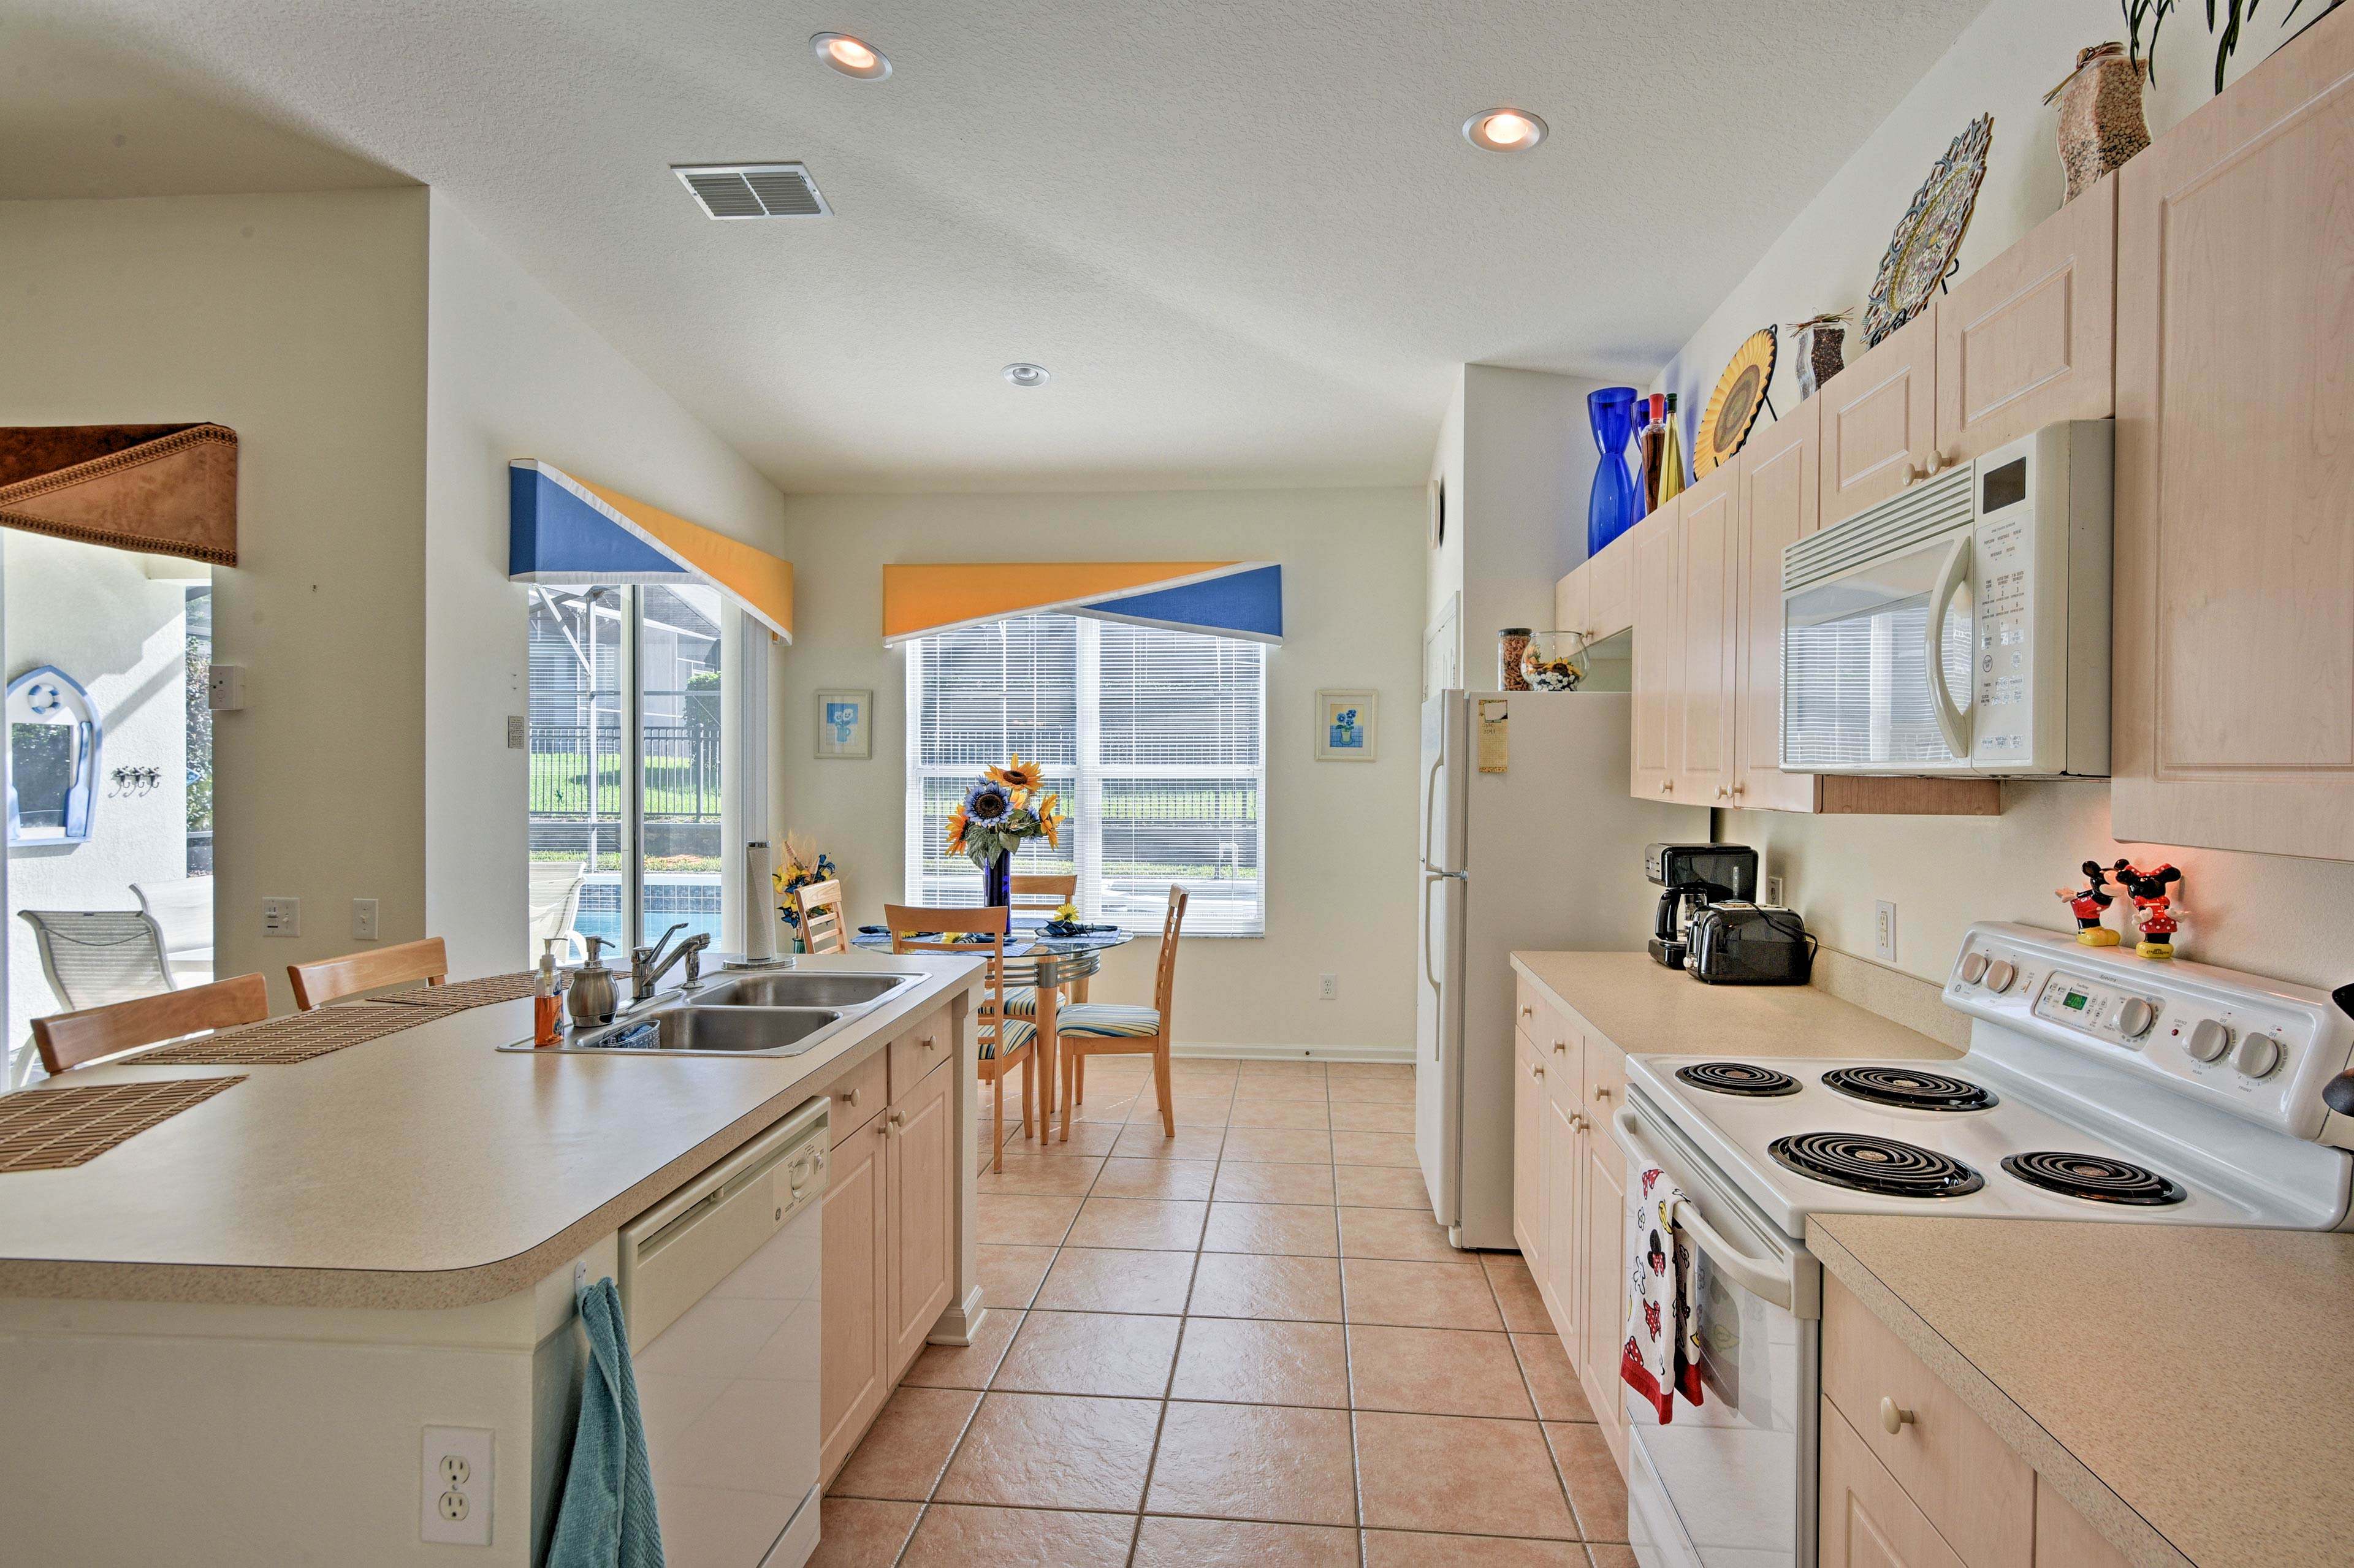 Ample room, countertop space, and all the essential utensils make cooking easy.